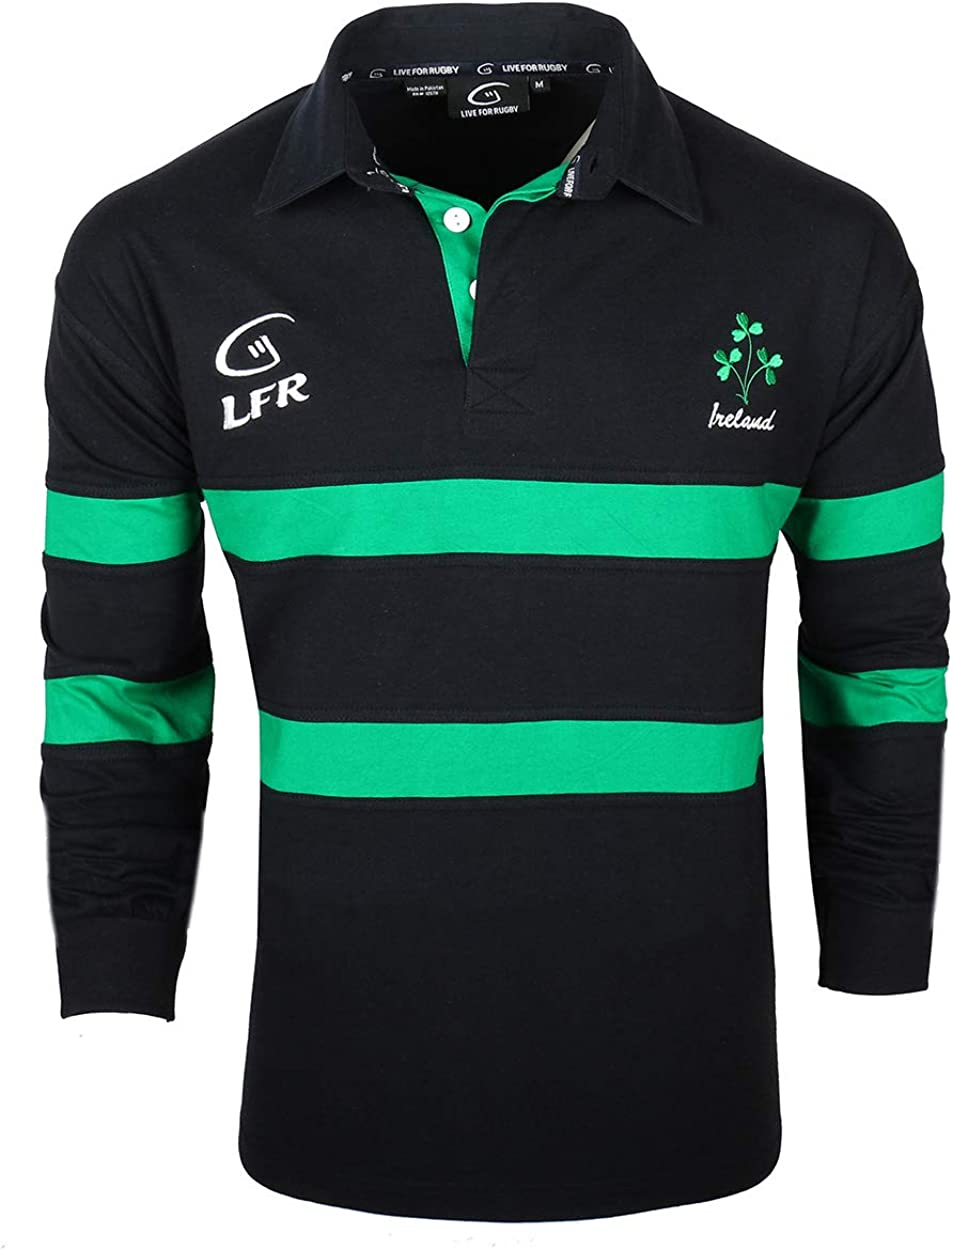 Irish Rugby Shirt for Men Ranking TOP9 Credence Blue Shamrock Crest Embroidered